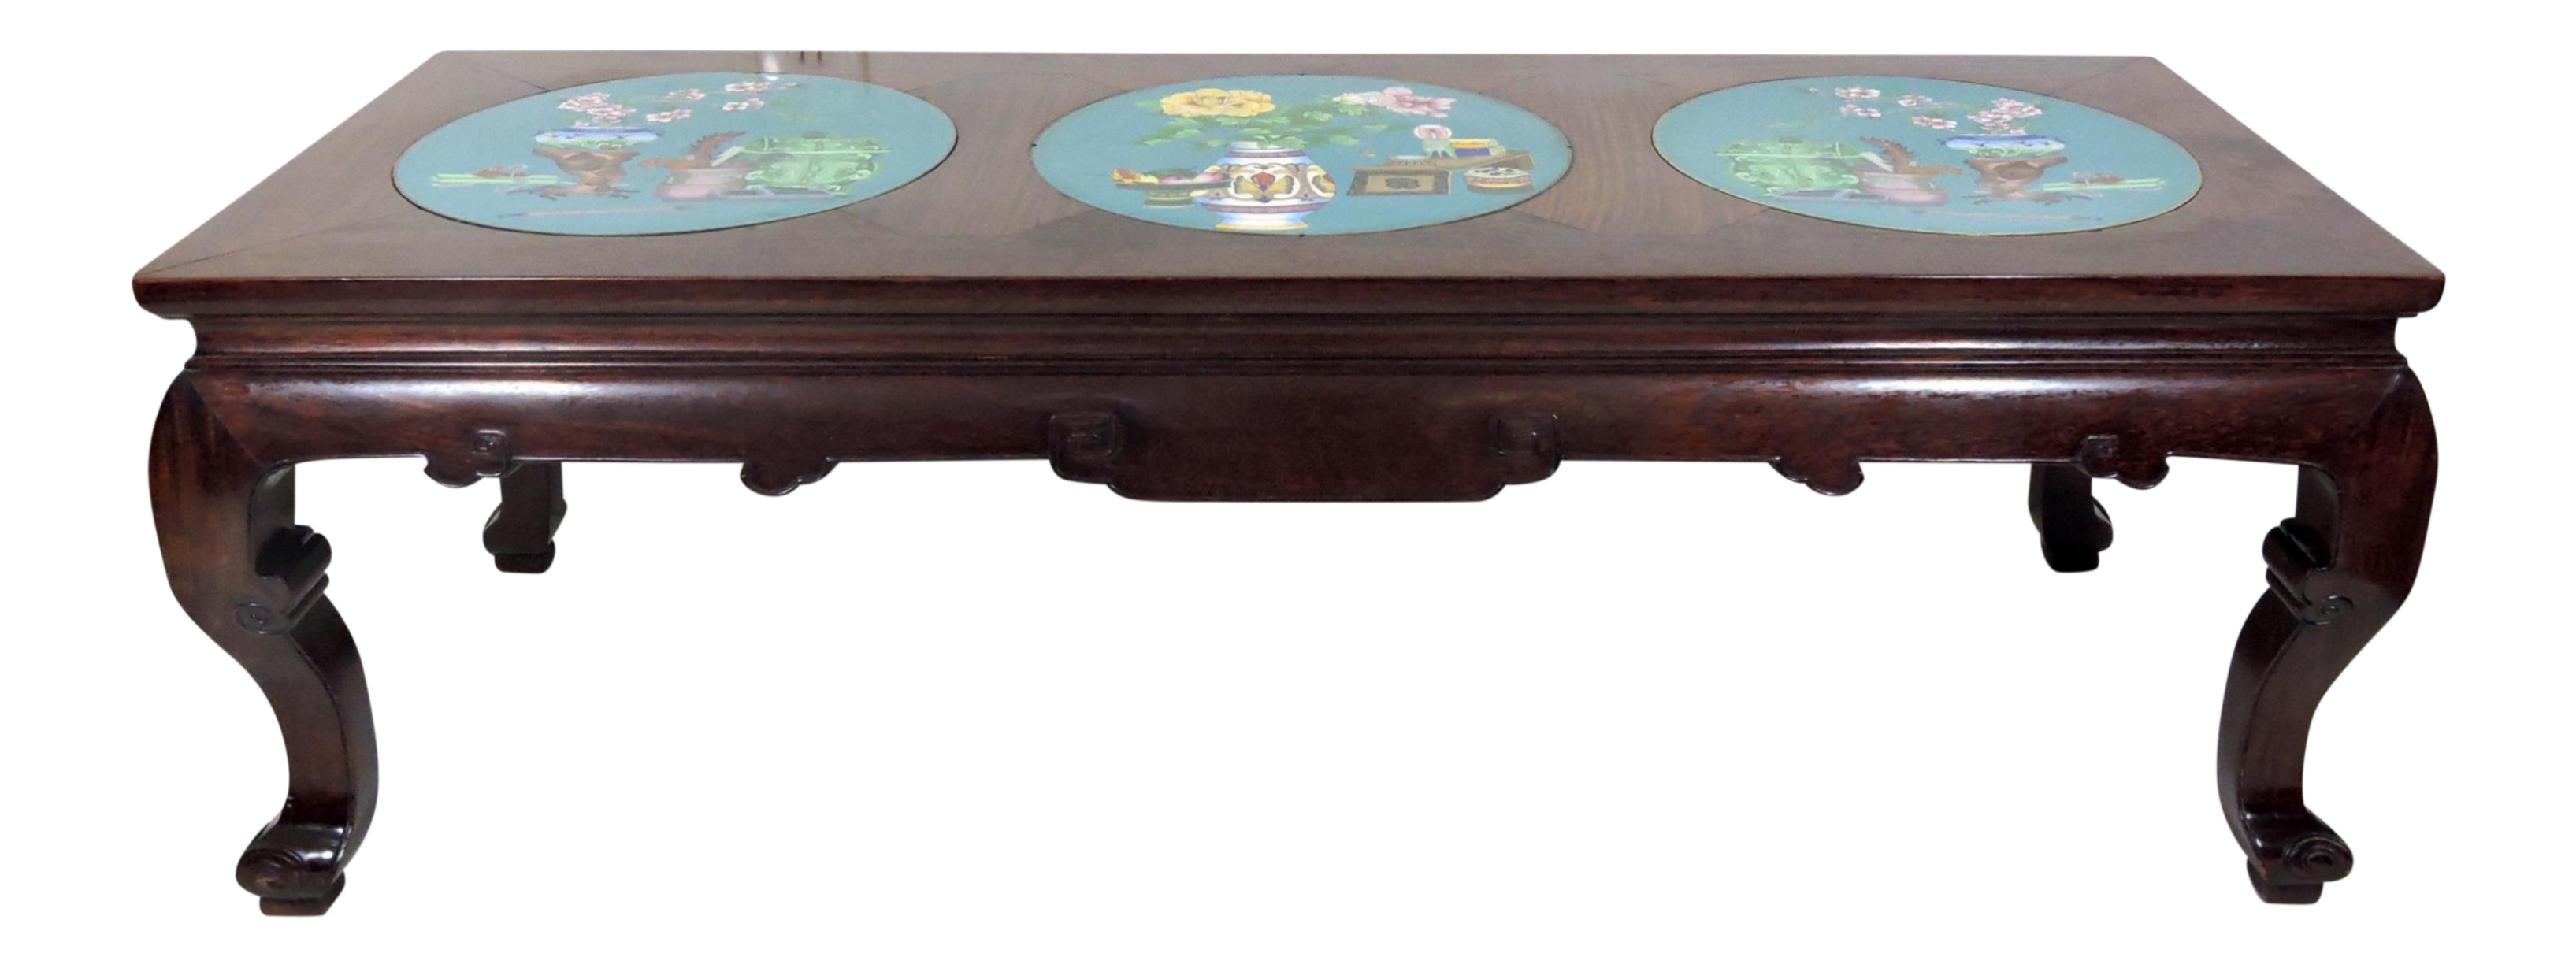 Mid 20th Century Asian Black Lacquer And Inlaid Mother Of Pearl Folding Round Coffee Table Coffee Table Folding Coffee Table Round Coffee Table [ 2146 x 3204 Pixel ]